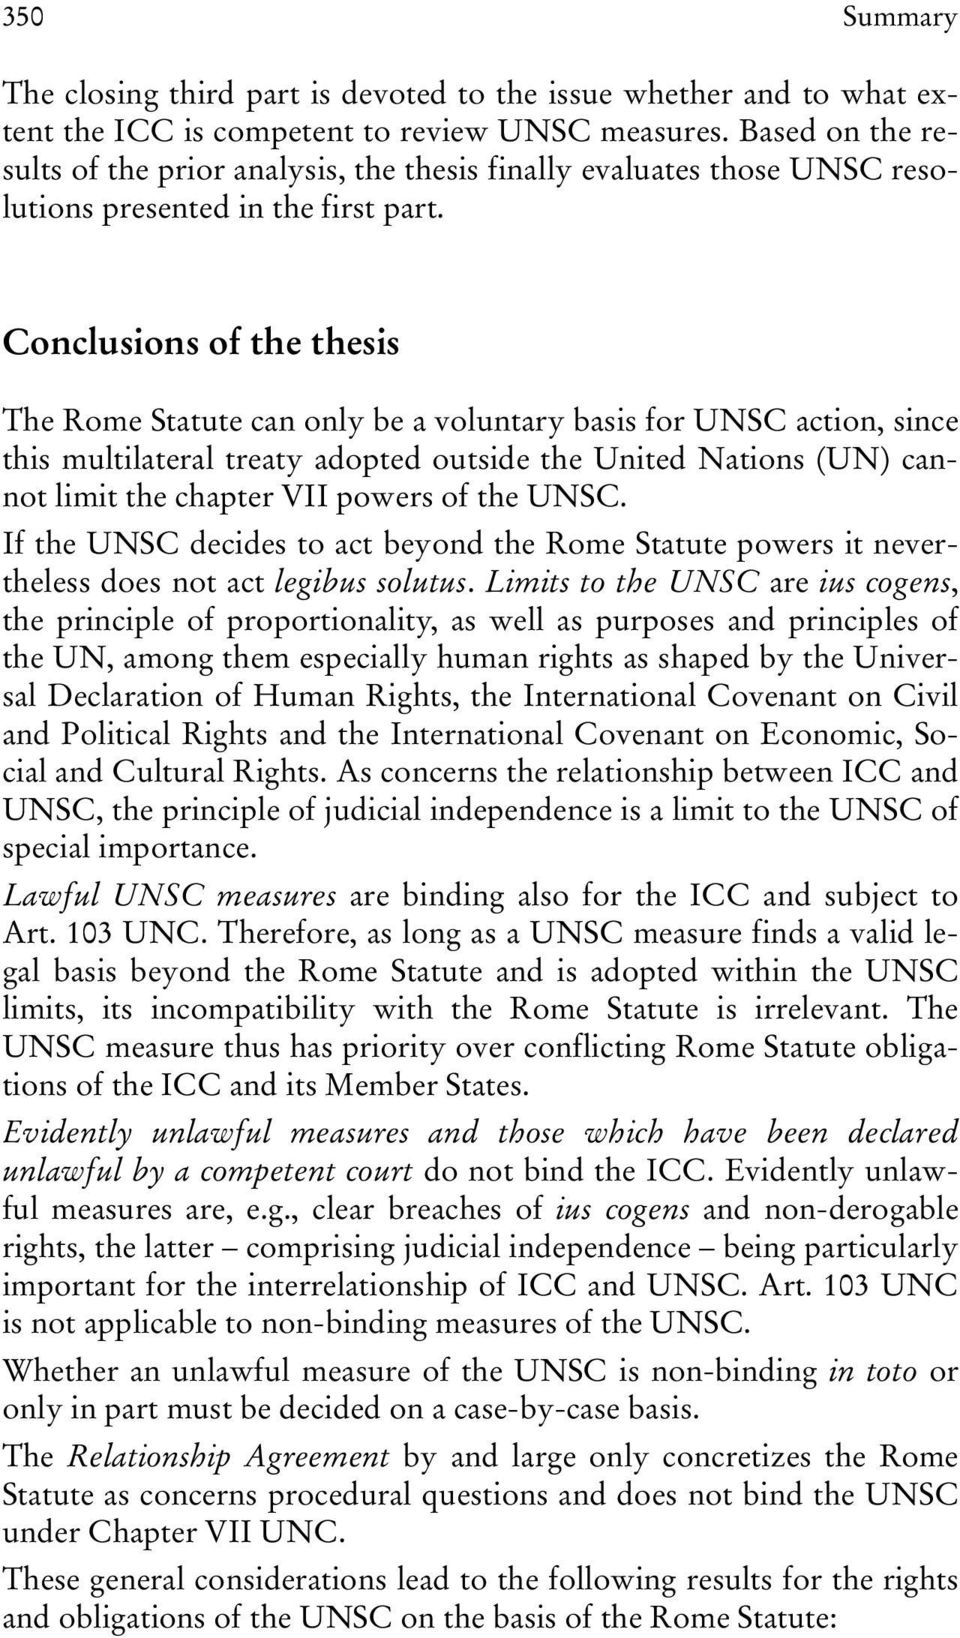 Conclusions of the thesis The Rome Statute can only be a voluntary basis for UNSC action, since this multilateral treaty adopted outside the United Nations (UN) cannot limit the chapter VII powers of